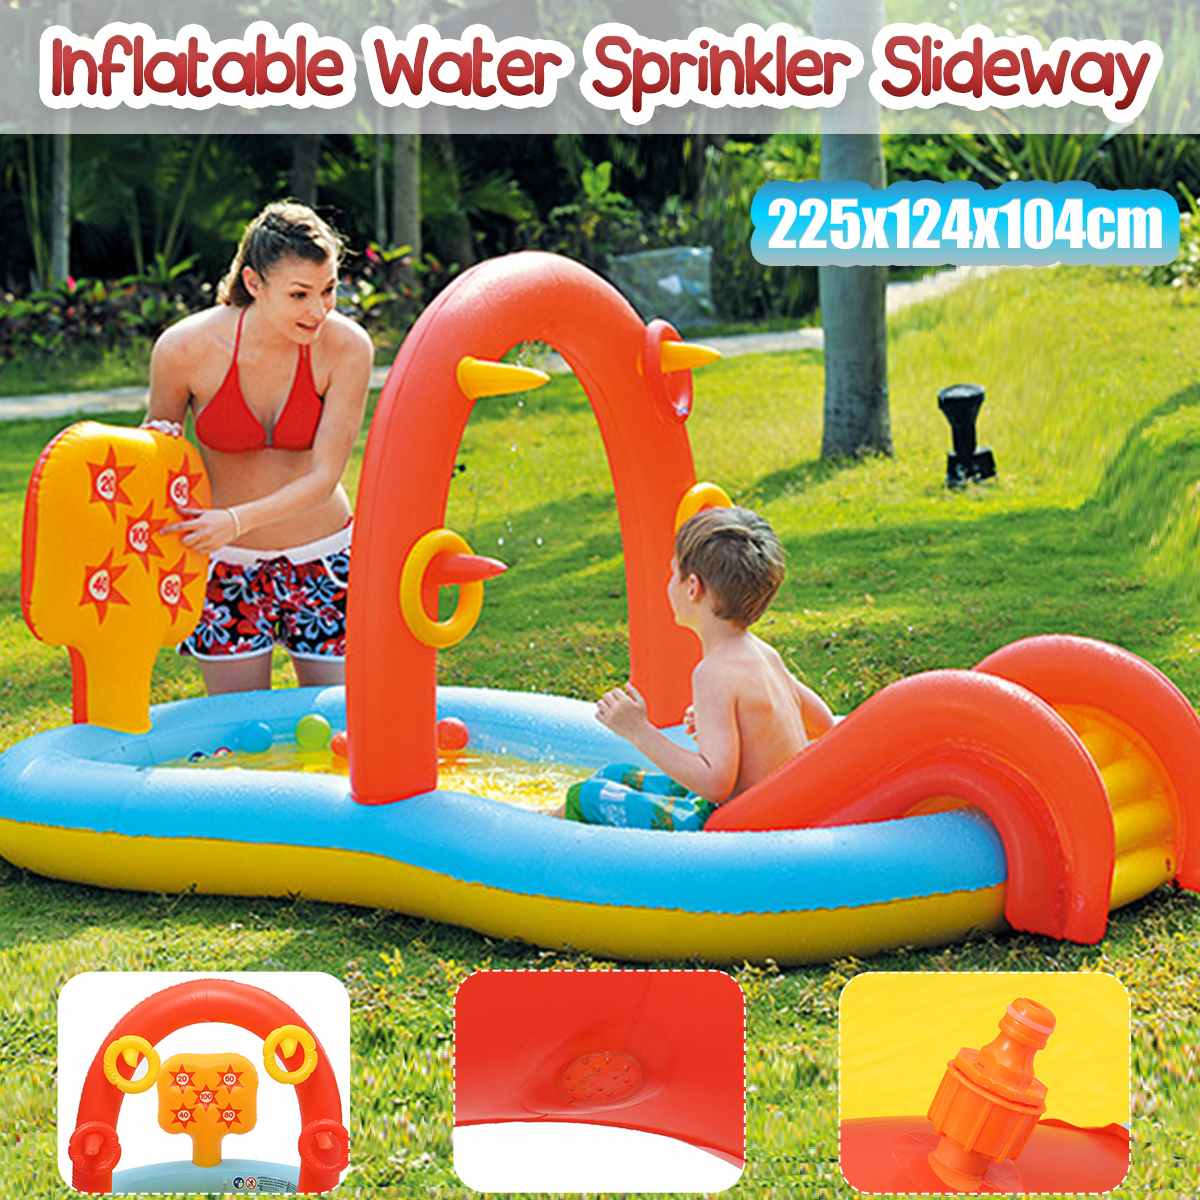 Inflatable Water Sprinkler Pool Water Sprinkler Slides Toy Kids Outdoor Funny Summer Splash PVC Balls Kids' Water Toys